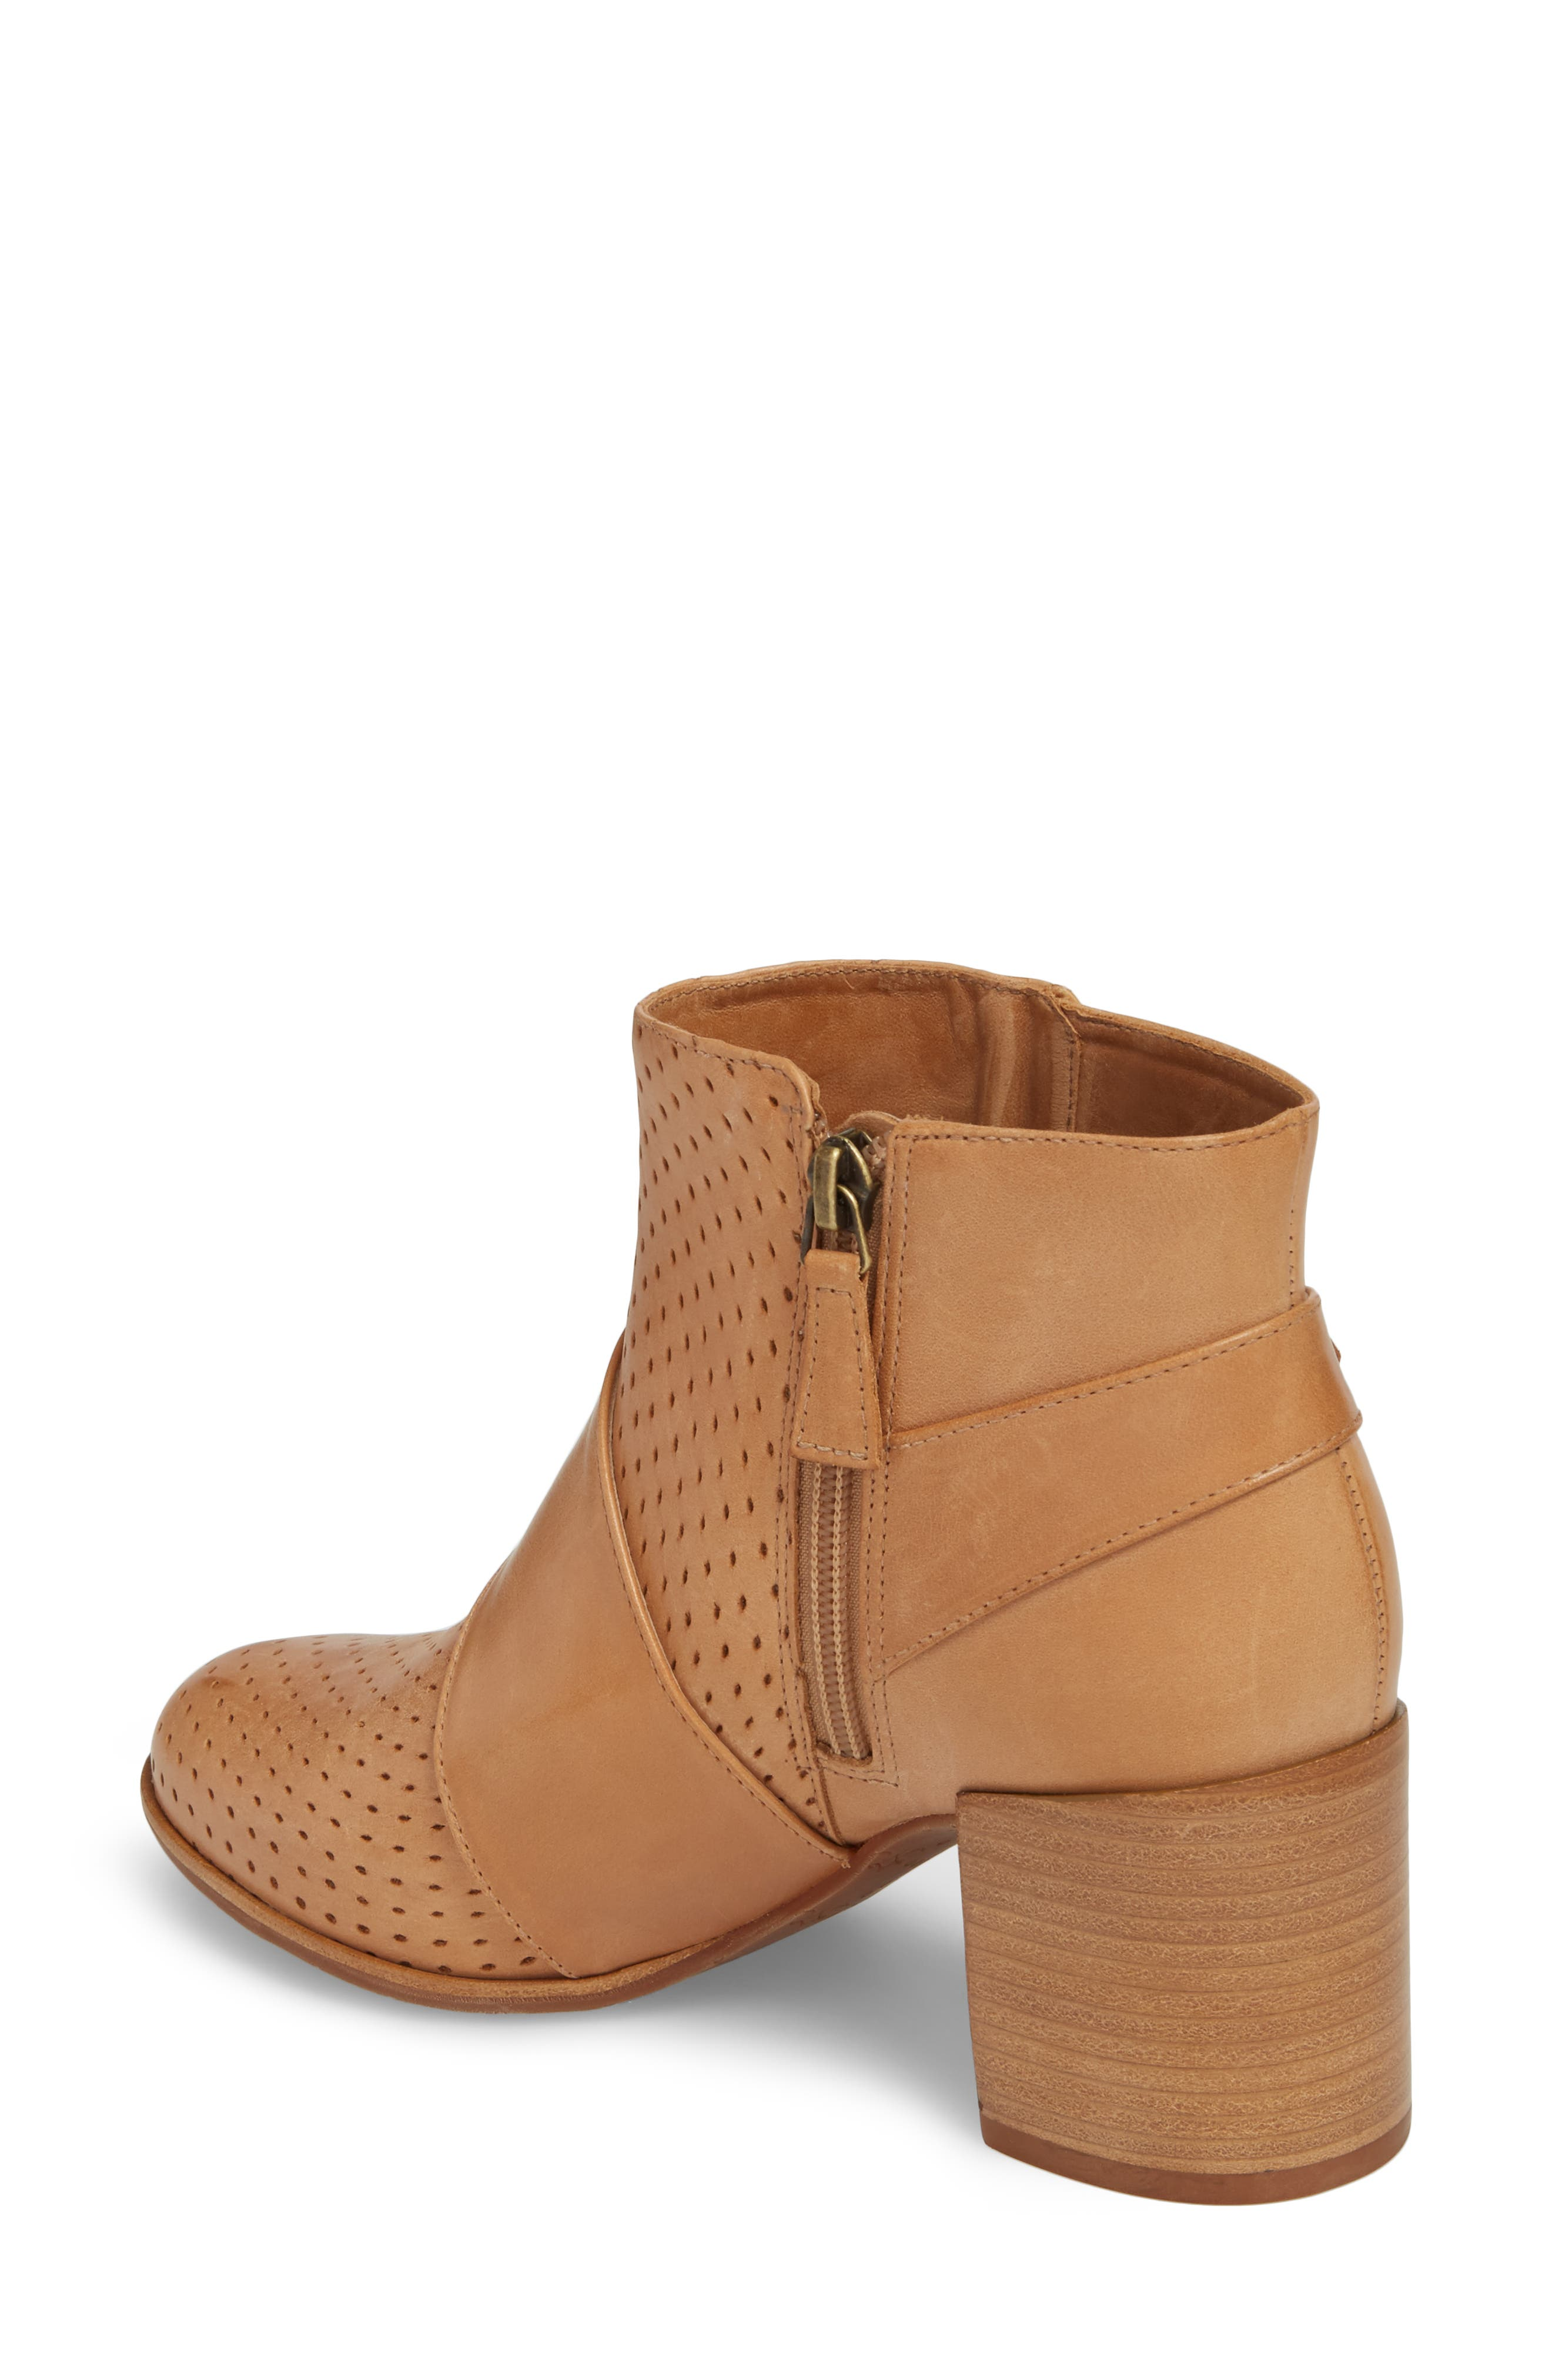 Felice Bootie,                             Alternate thumbnail 2, color,                             Tan Leather